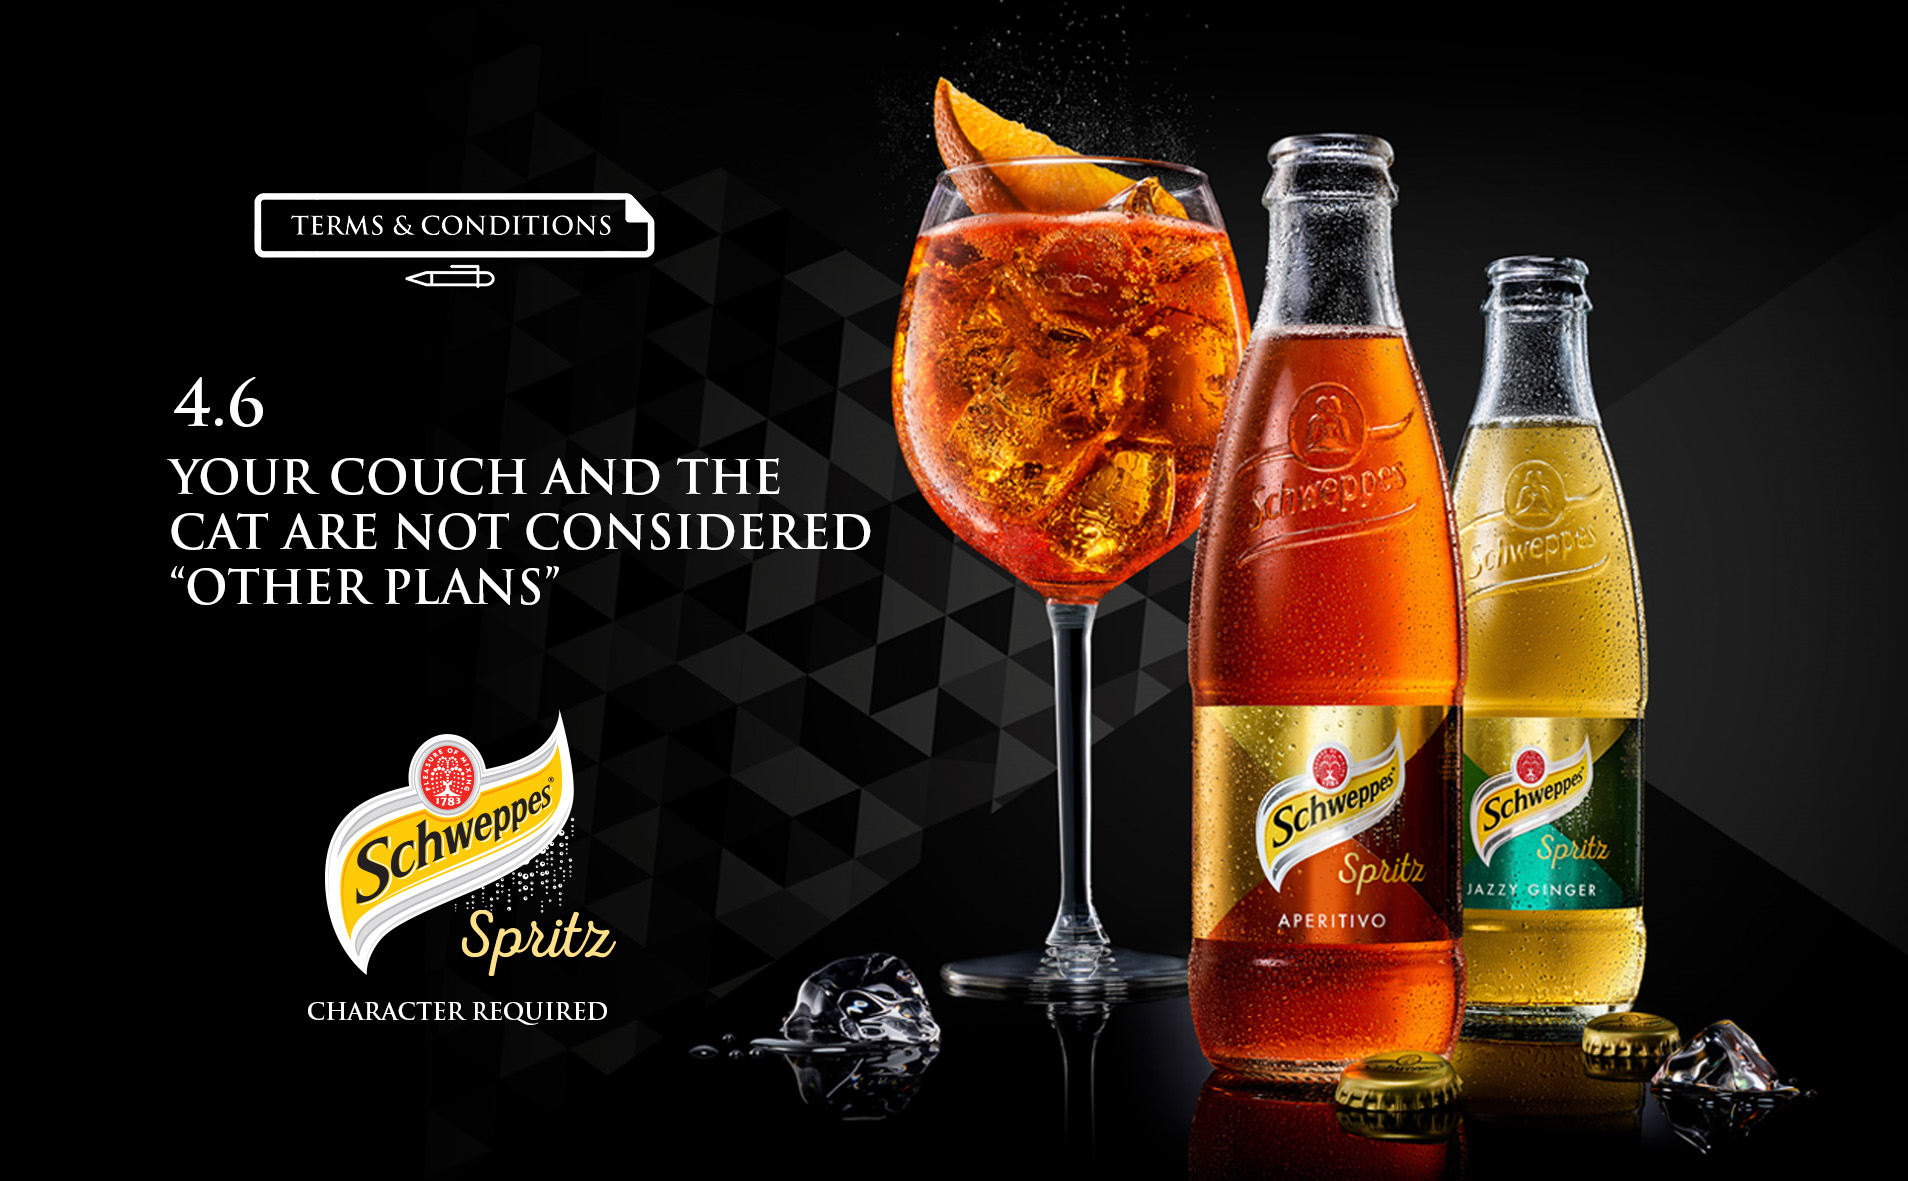 Schweppes Spritz Terms &Conditions